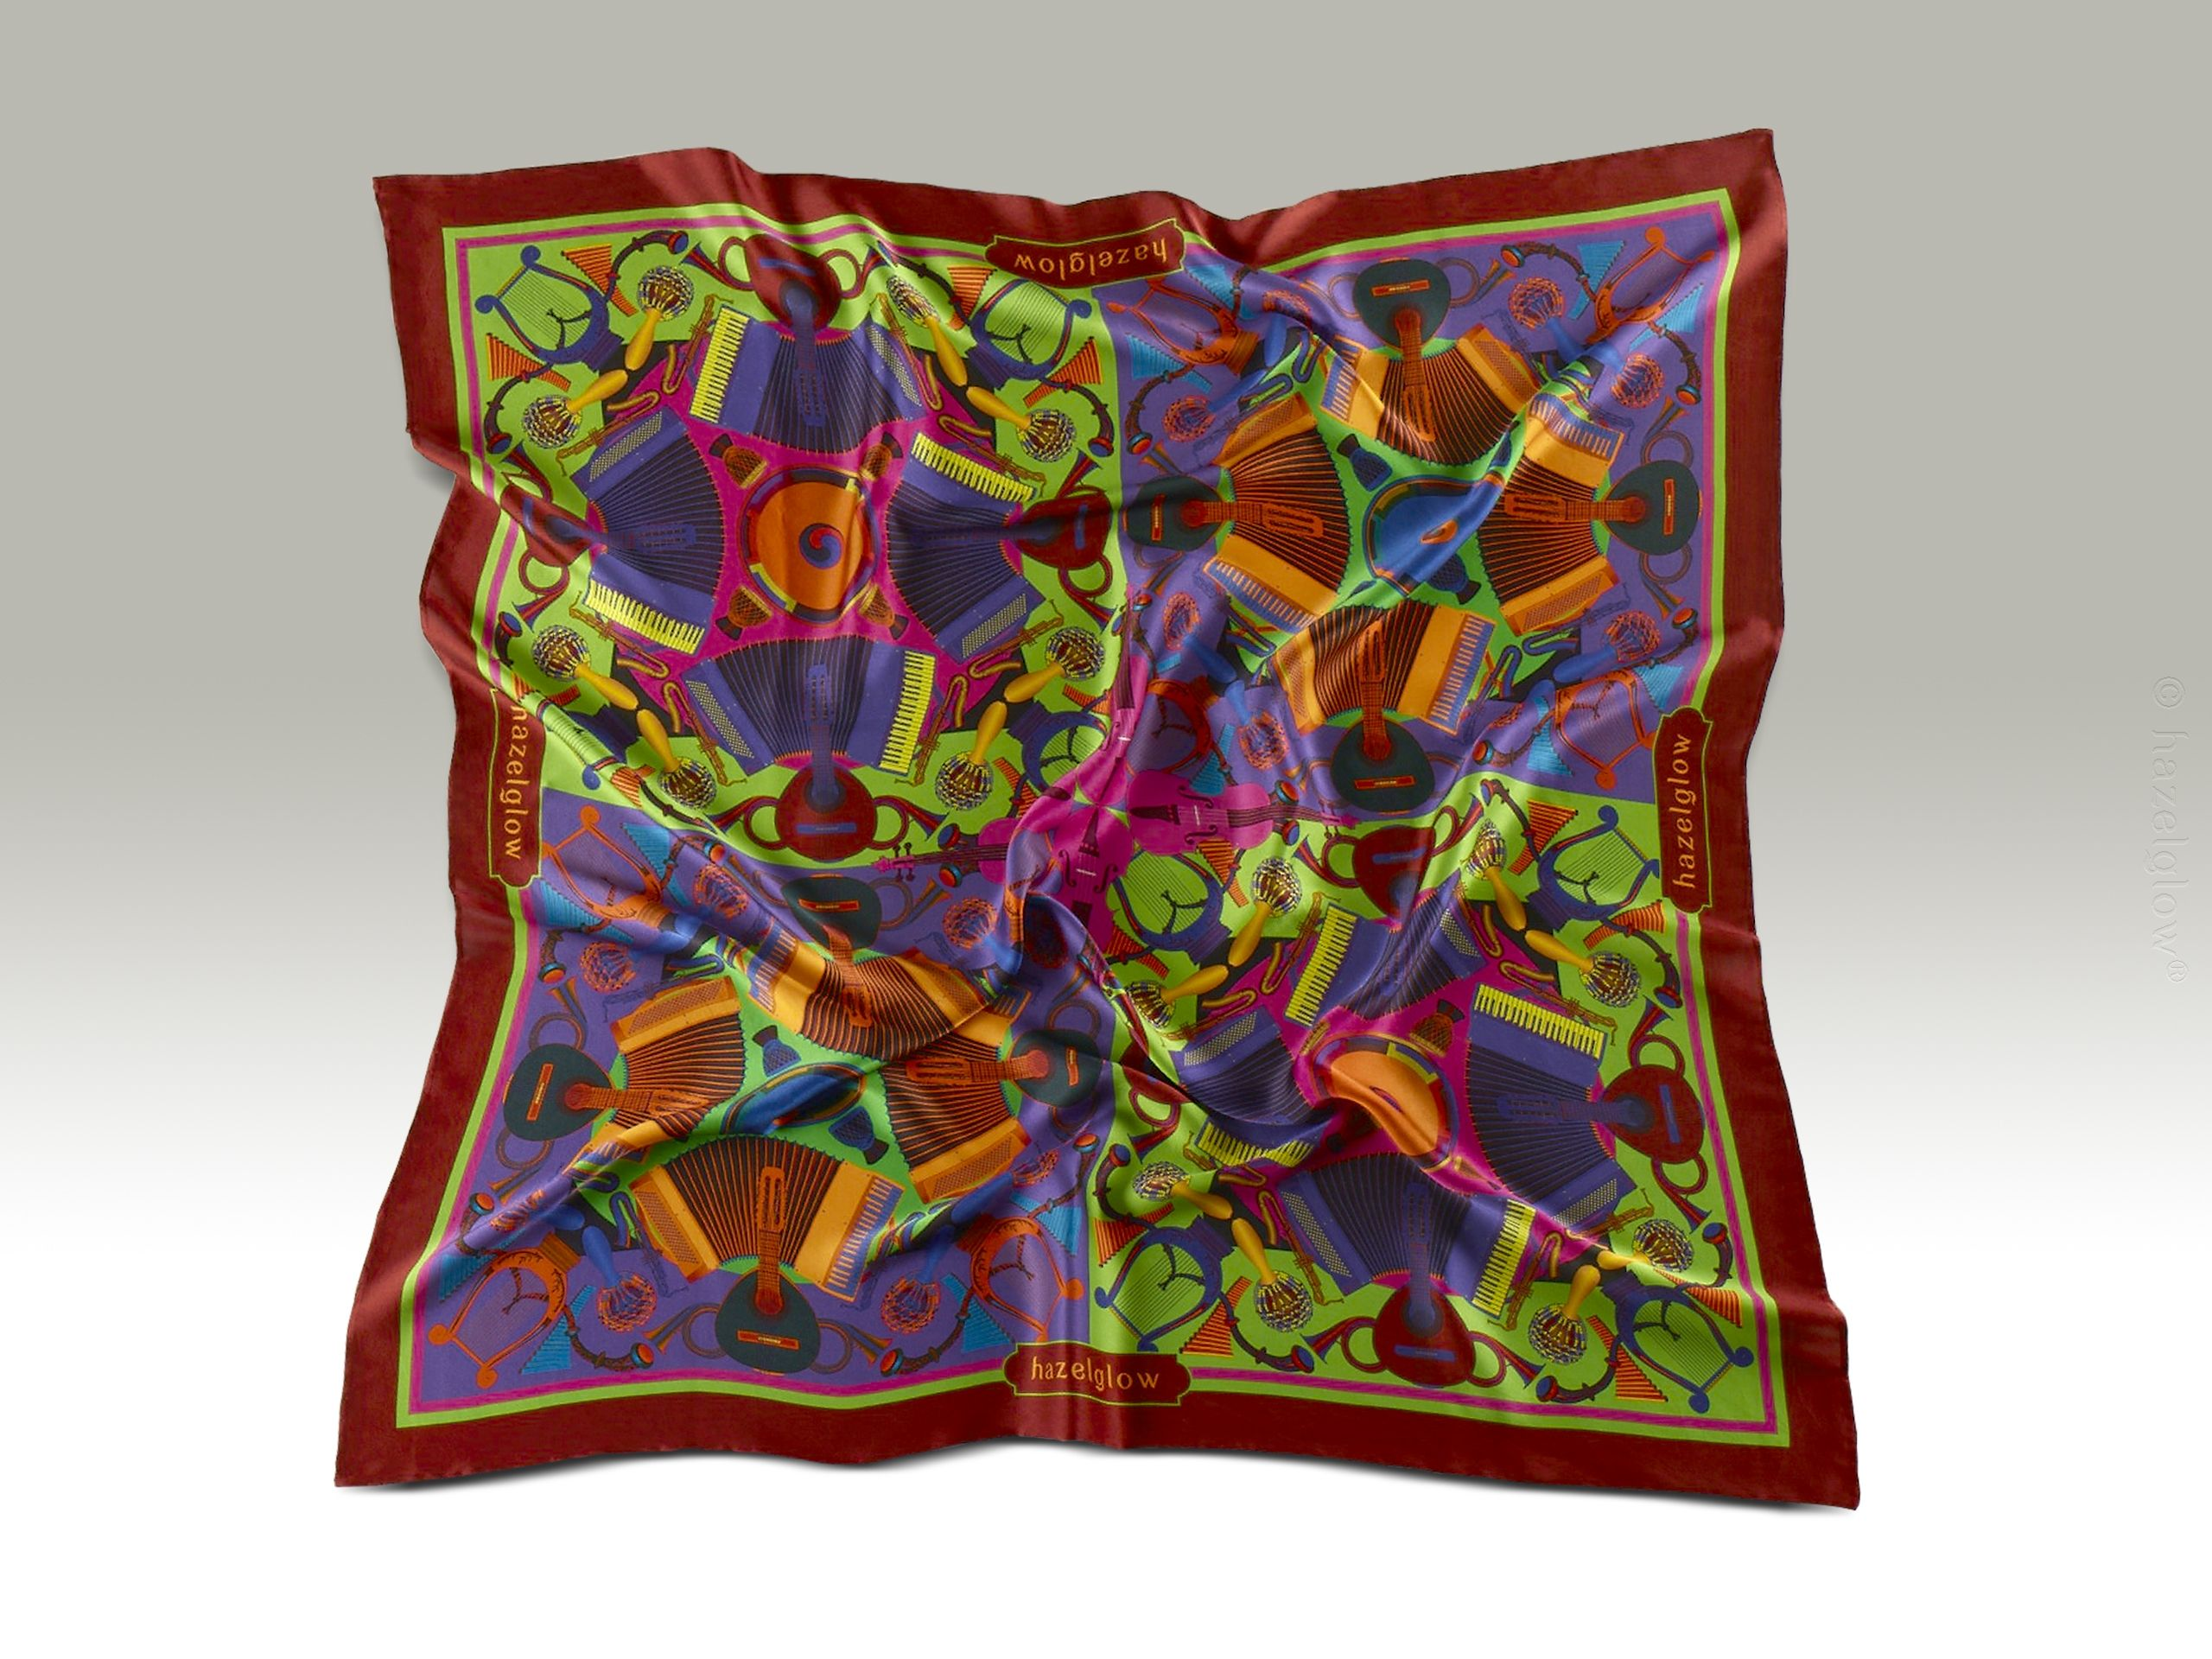 Fashion Silk Scarf <br>7 | Luxury Designer Silk Scarves for Women's by Hazelglow Store